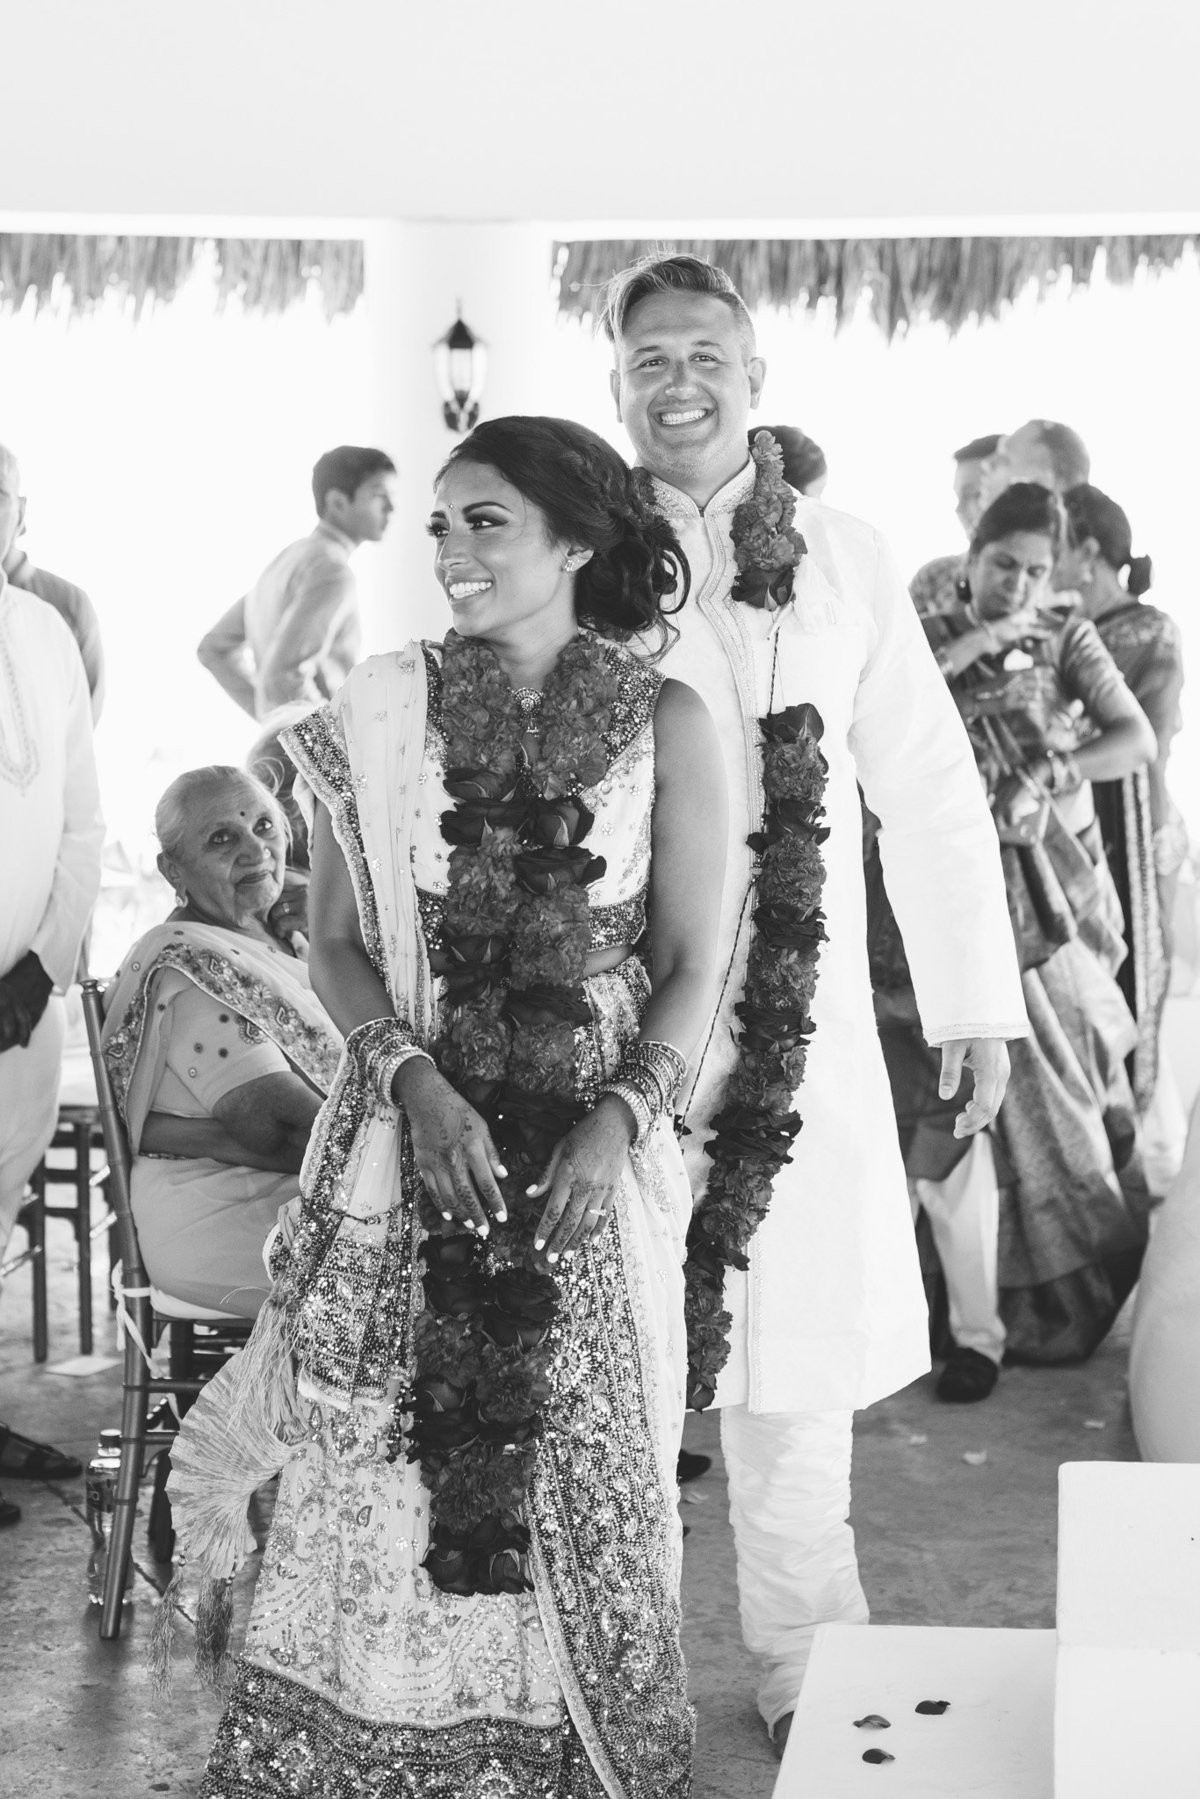 Joy from a bride and groom at the close of their Indian wedding ceremony.  Photography by Rebecca Cerasani.